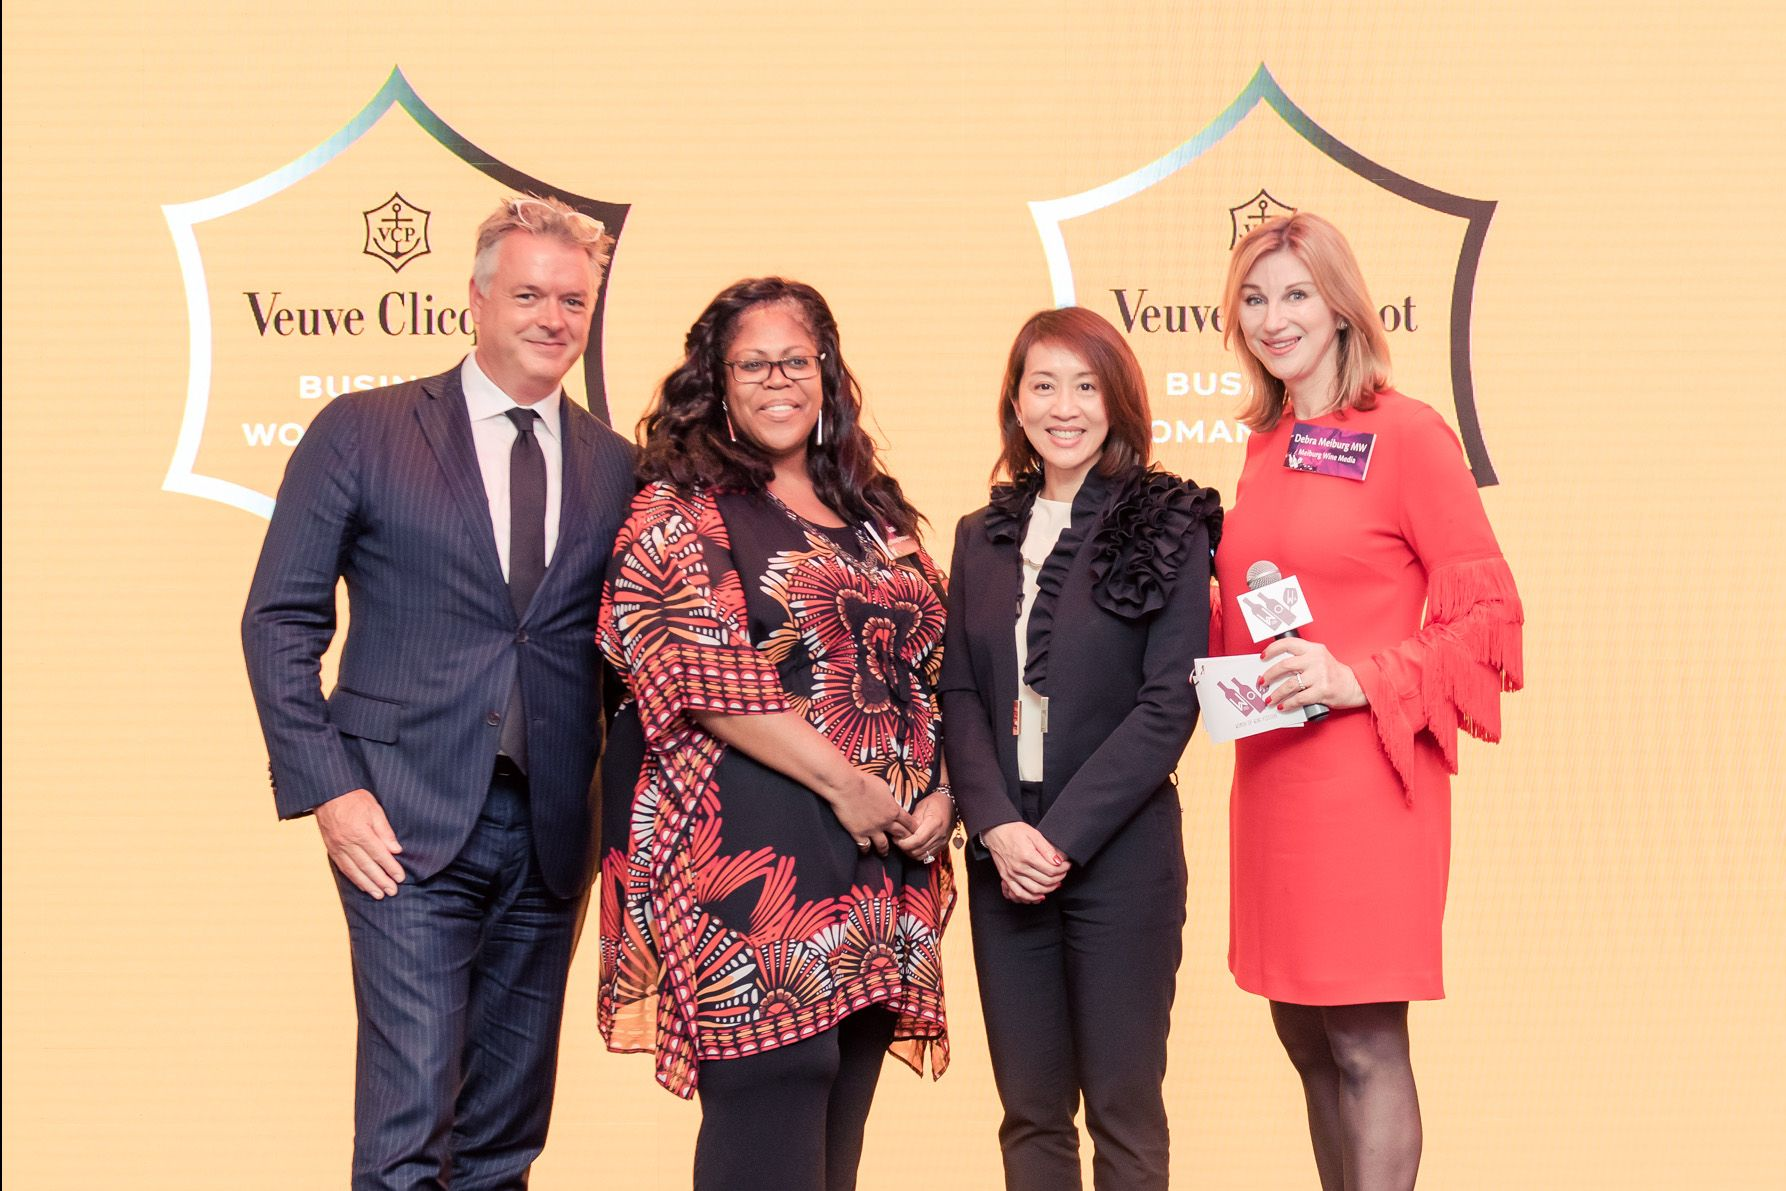 Women Of Wine Festival Announces Launch Of The Veuve Clicquot Business Woman Award 2018 In Hong Kong